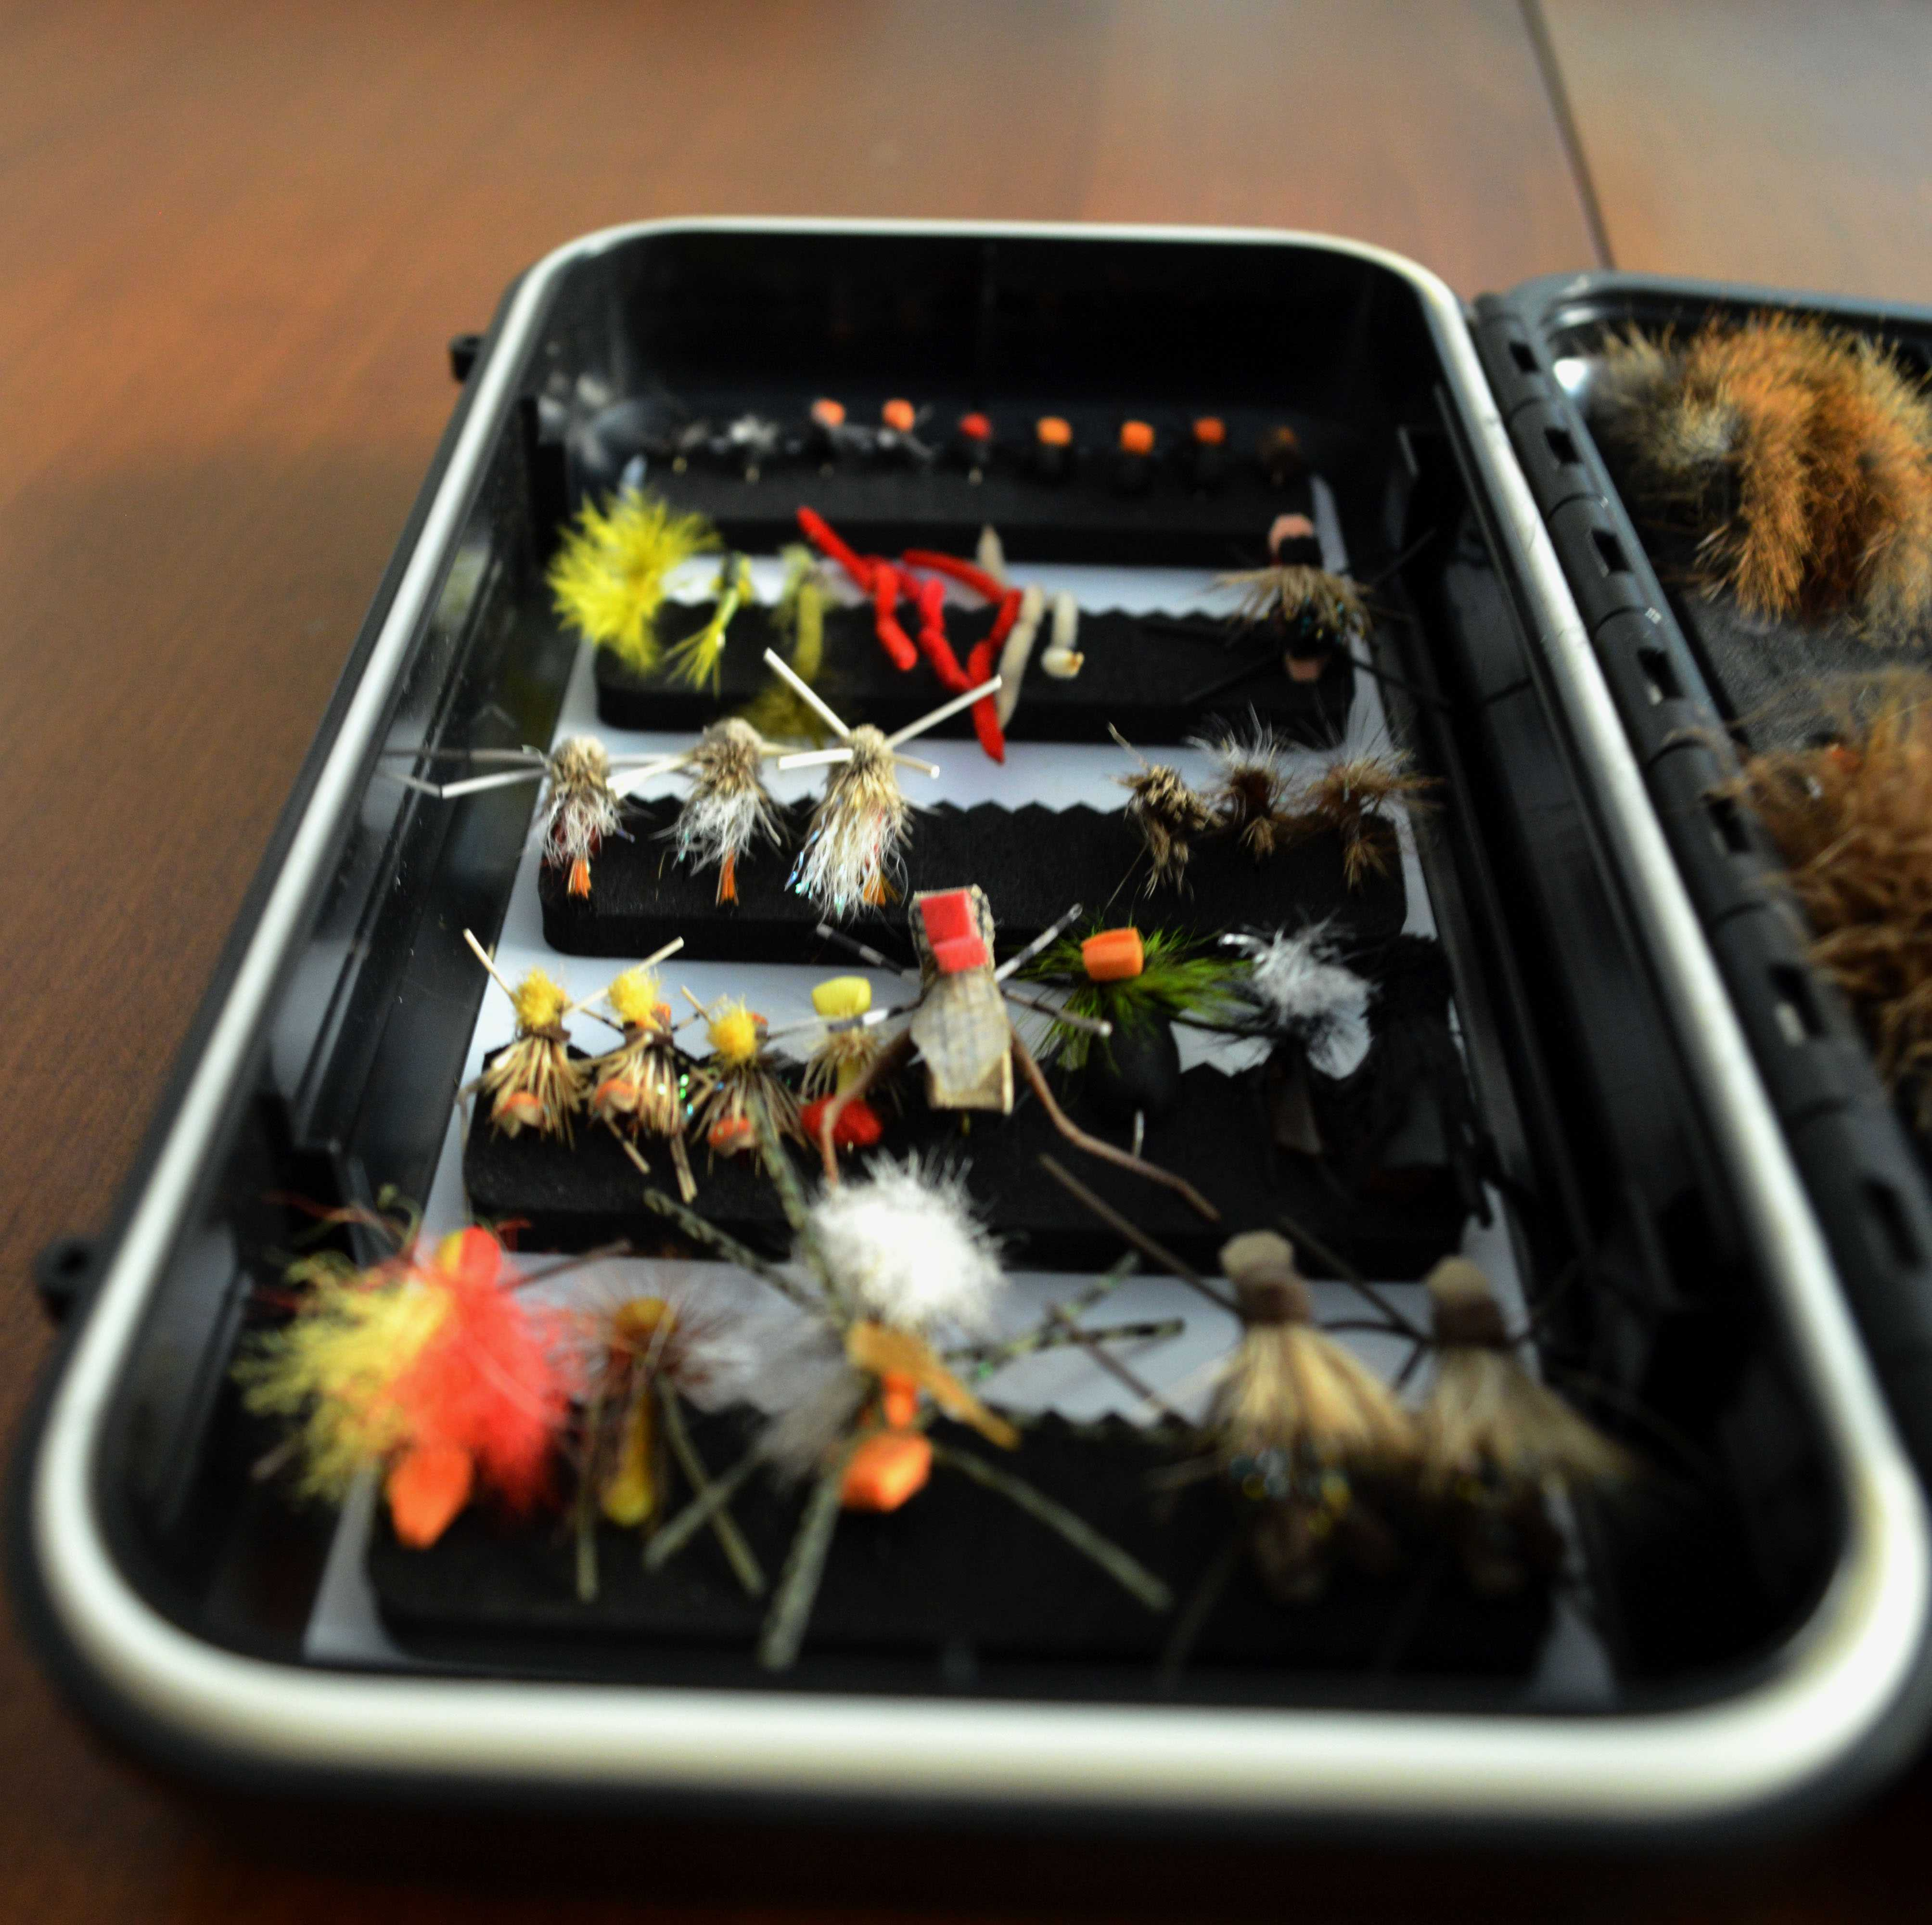 Fly Fishing: What Is It And How Do I Start?